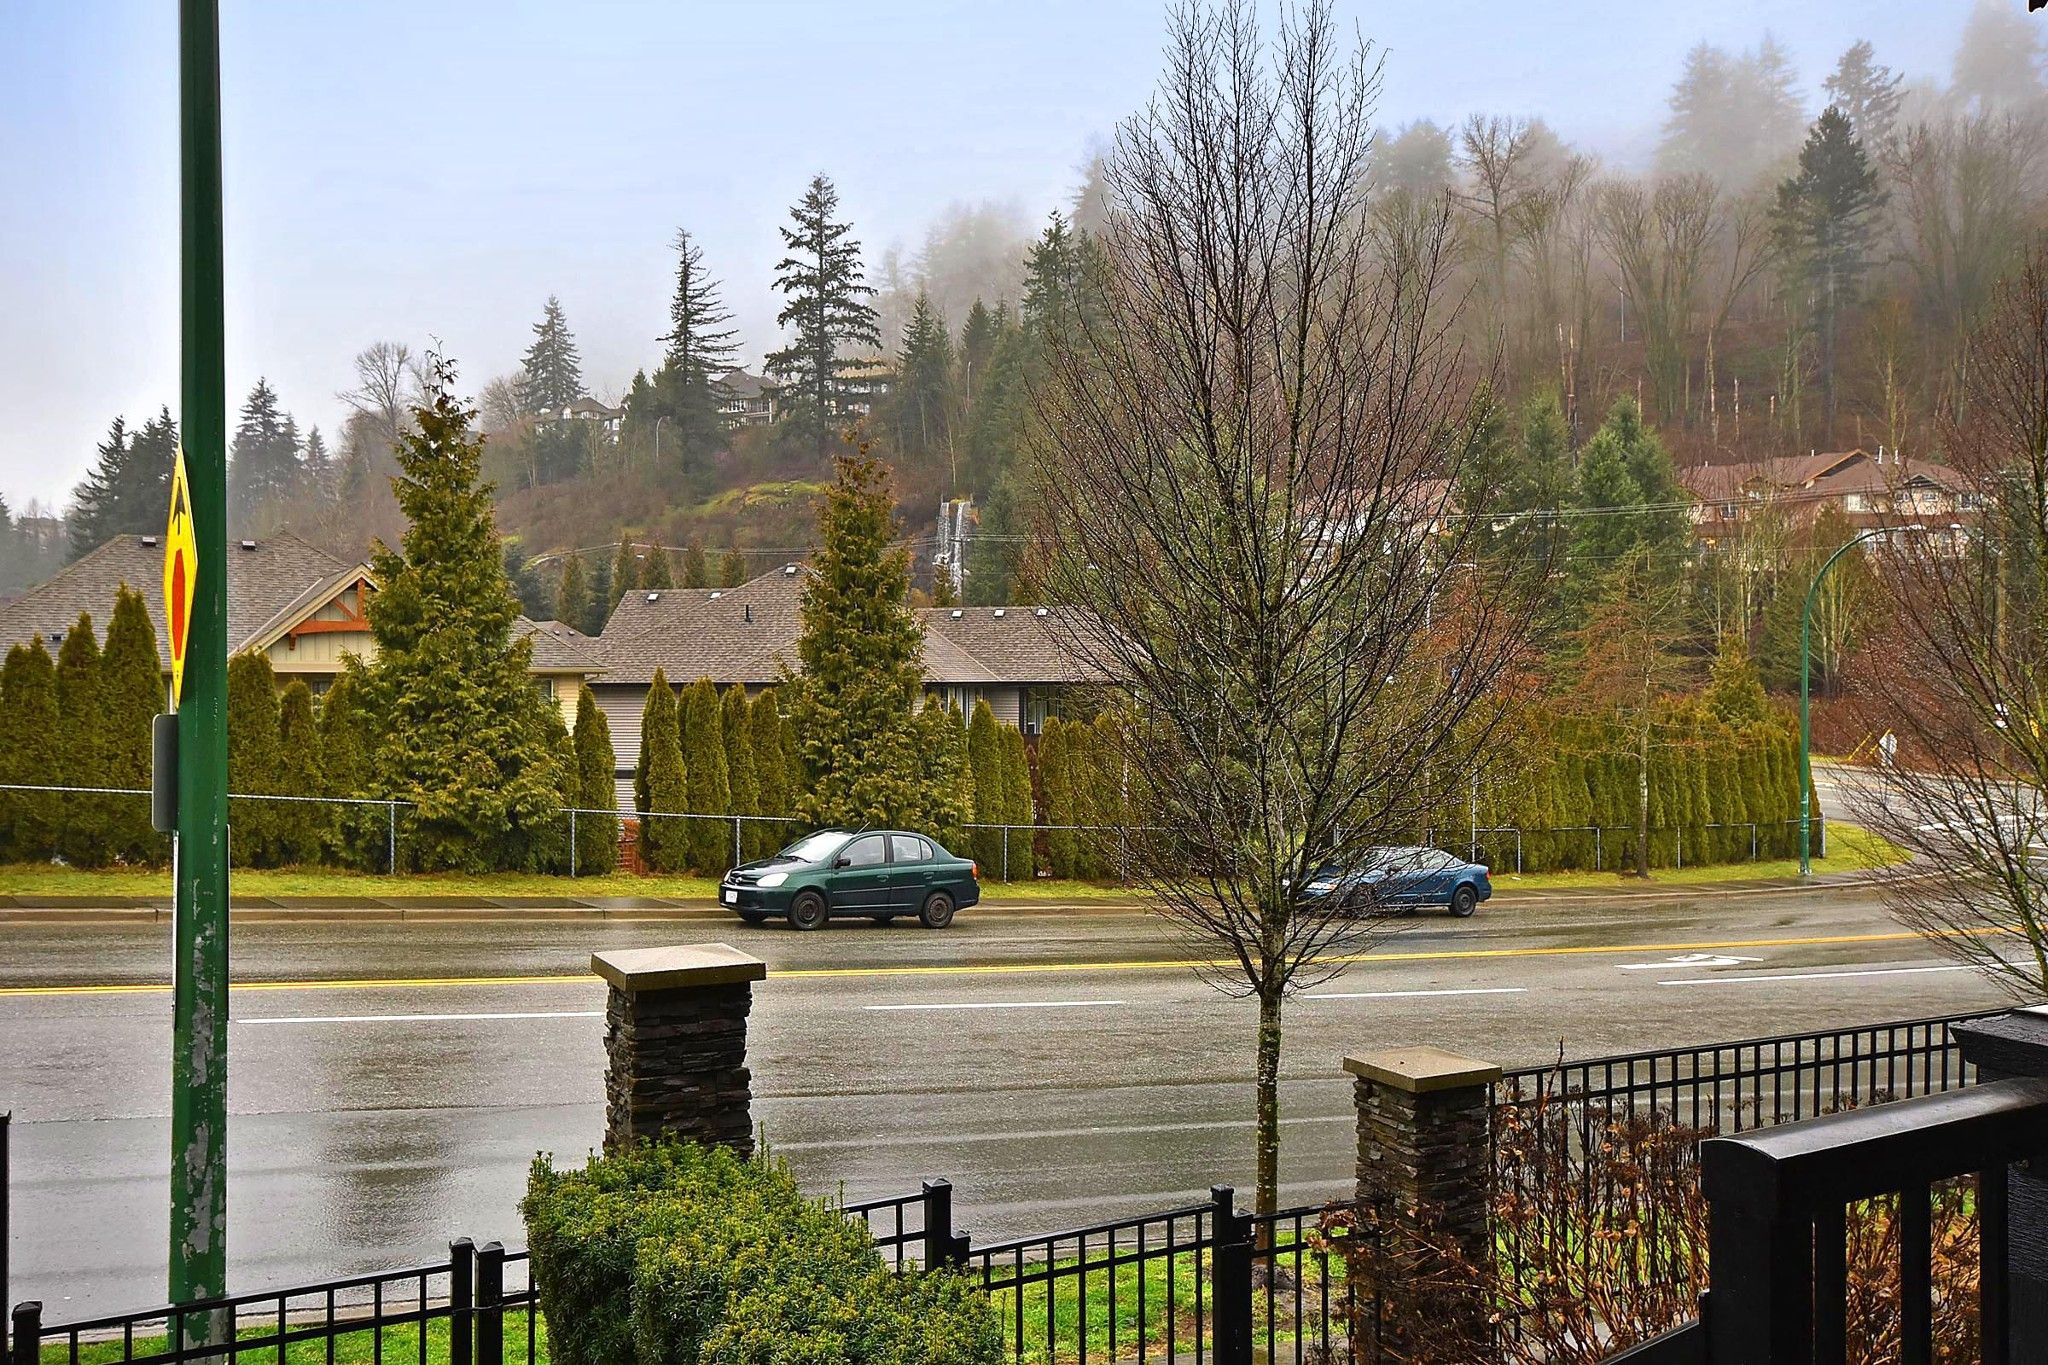 """Photo 2: Photos: 4 35298 MARSHALL Road in Abbotsford: Abbotsford East Townhouse for sale in """"Eagles Gate"""" : MLS®# R2434344"""